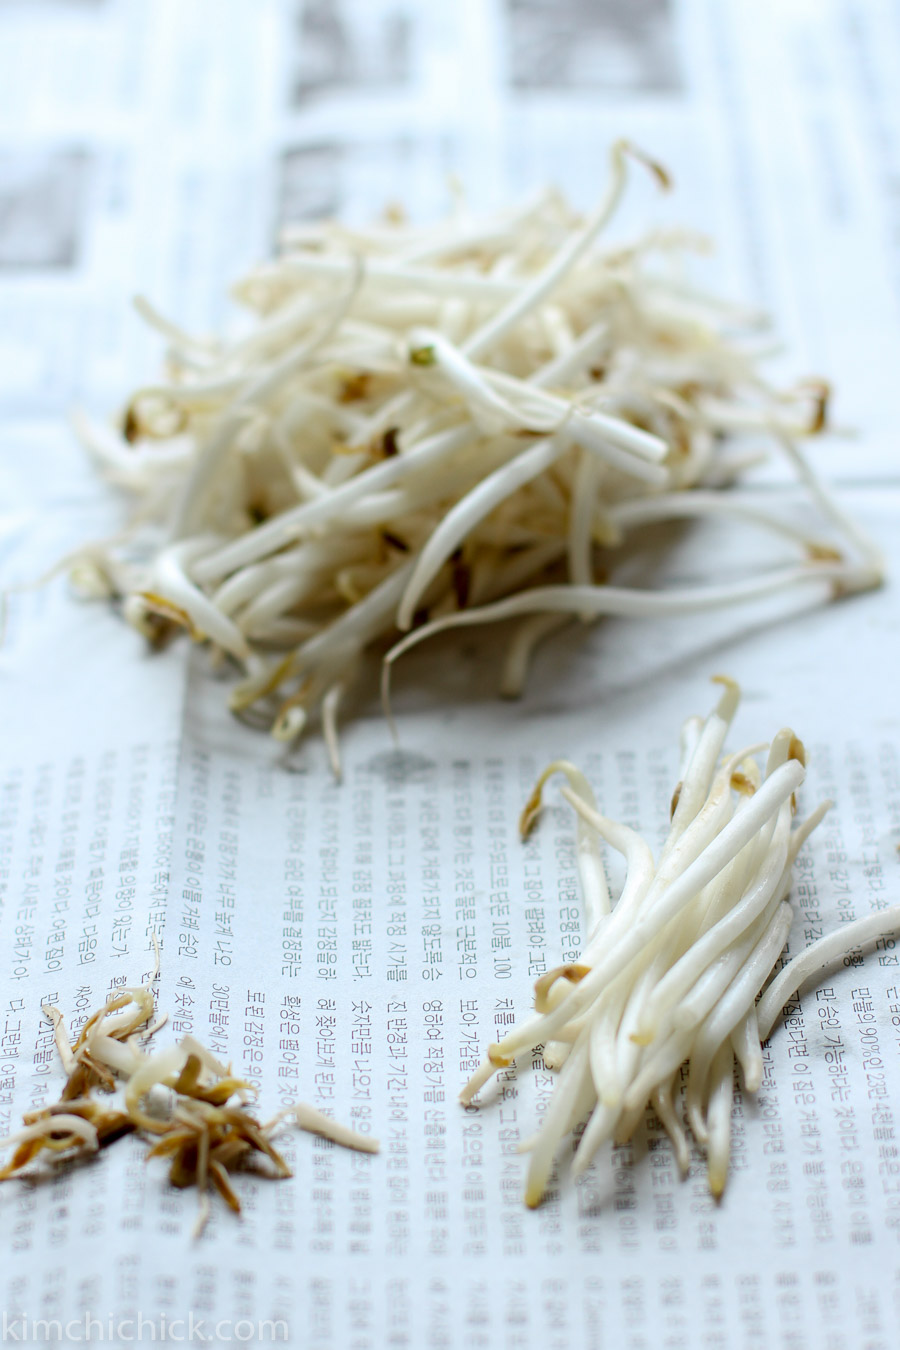 fresh Korean bean sprout salad | www.kimchichick.com